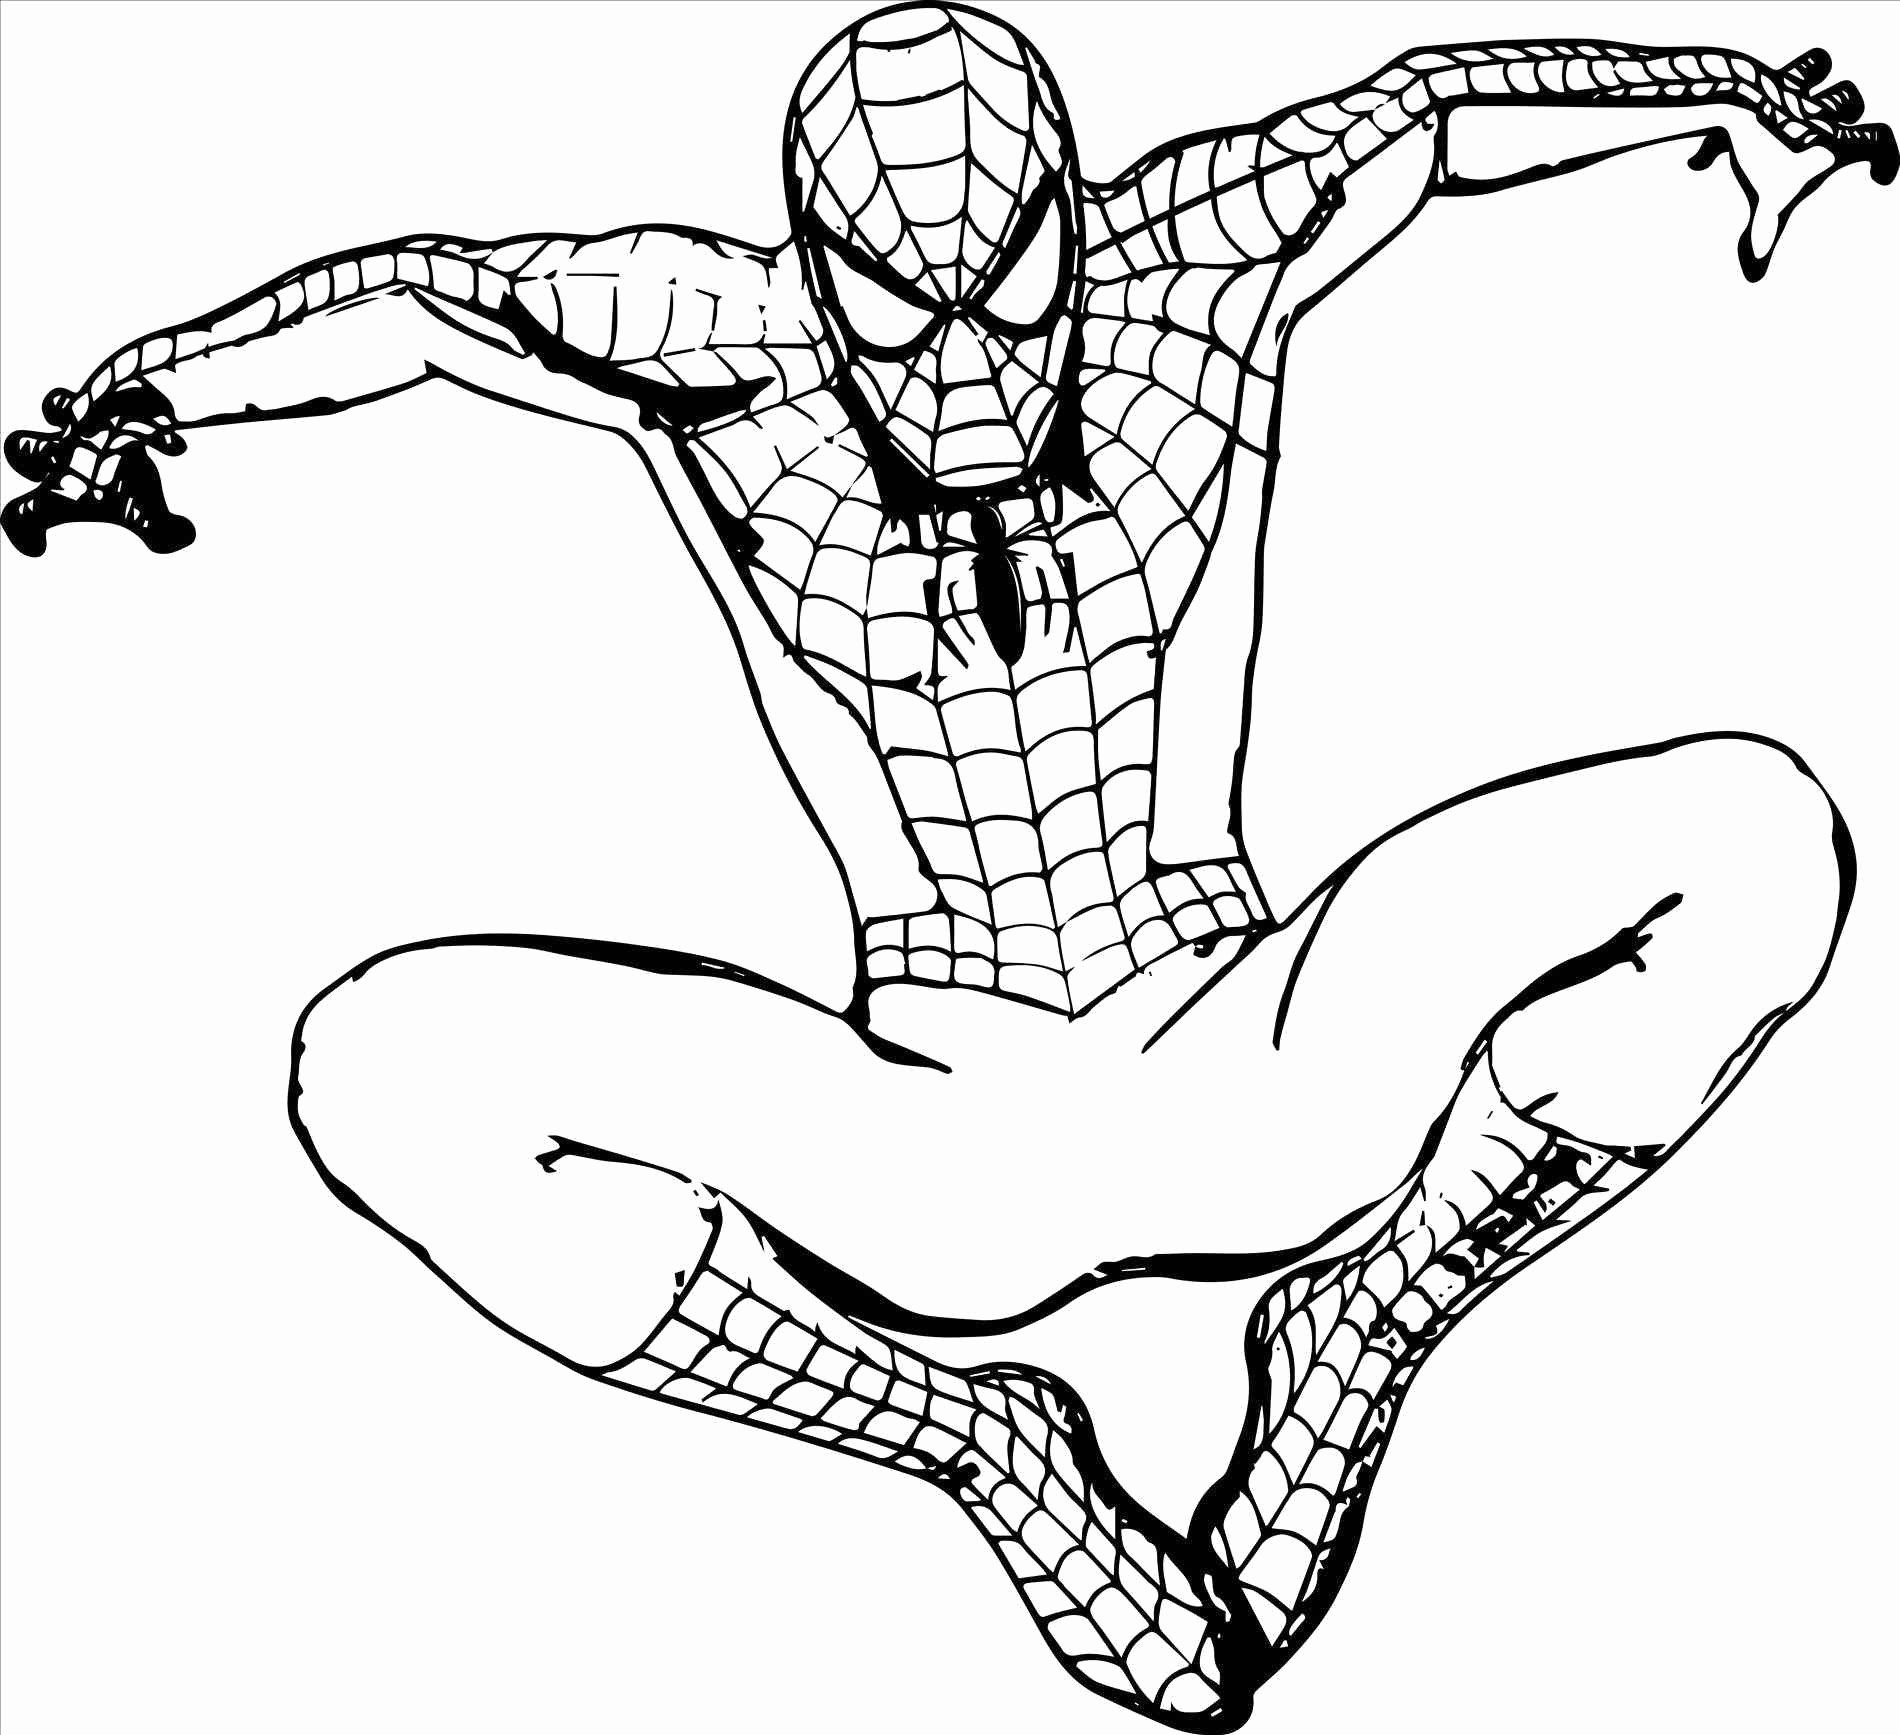 Cartoons Images Coloring Awesome Drawing A Cartoon Spiderman Superhero Coloring Pages Superhero Coloring Spiderman Coloring